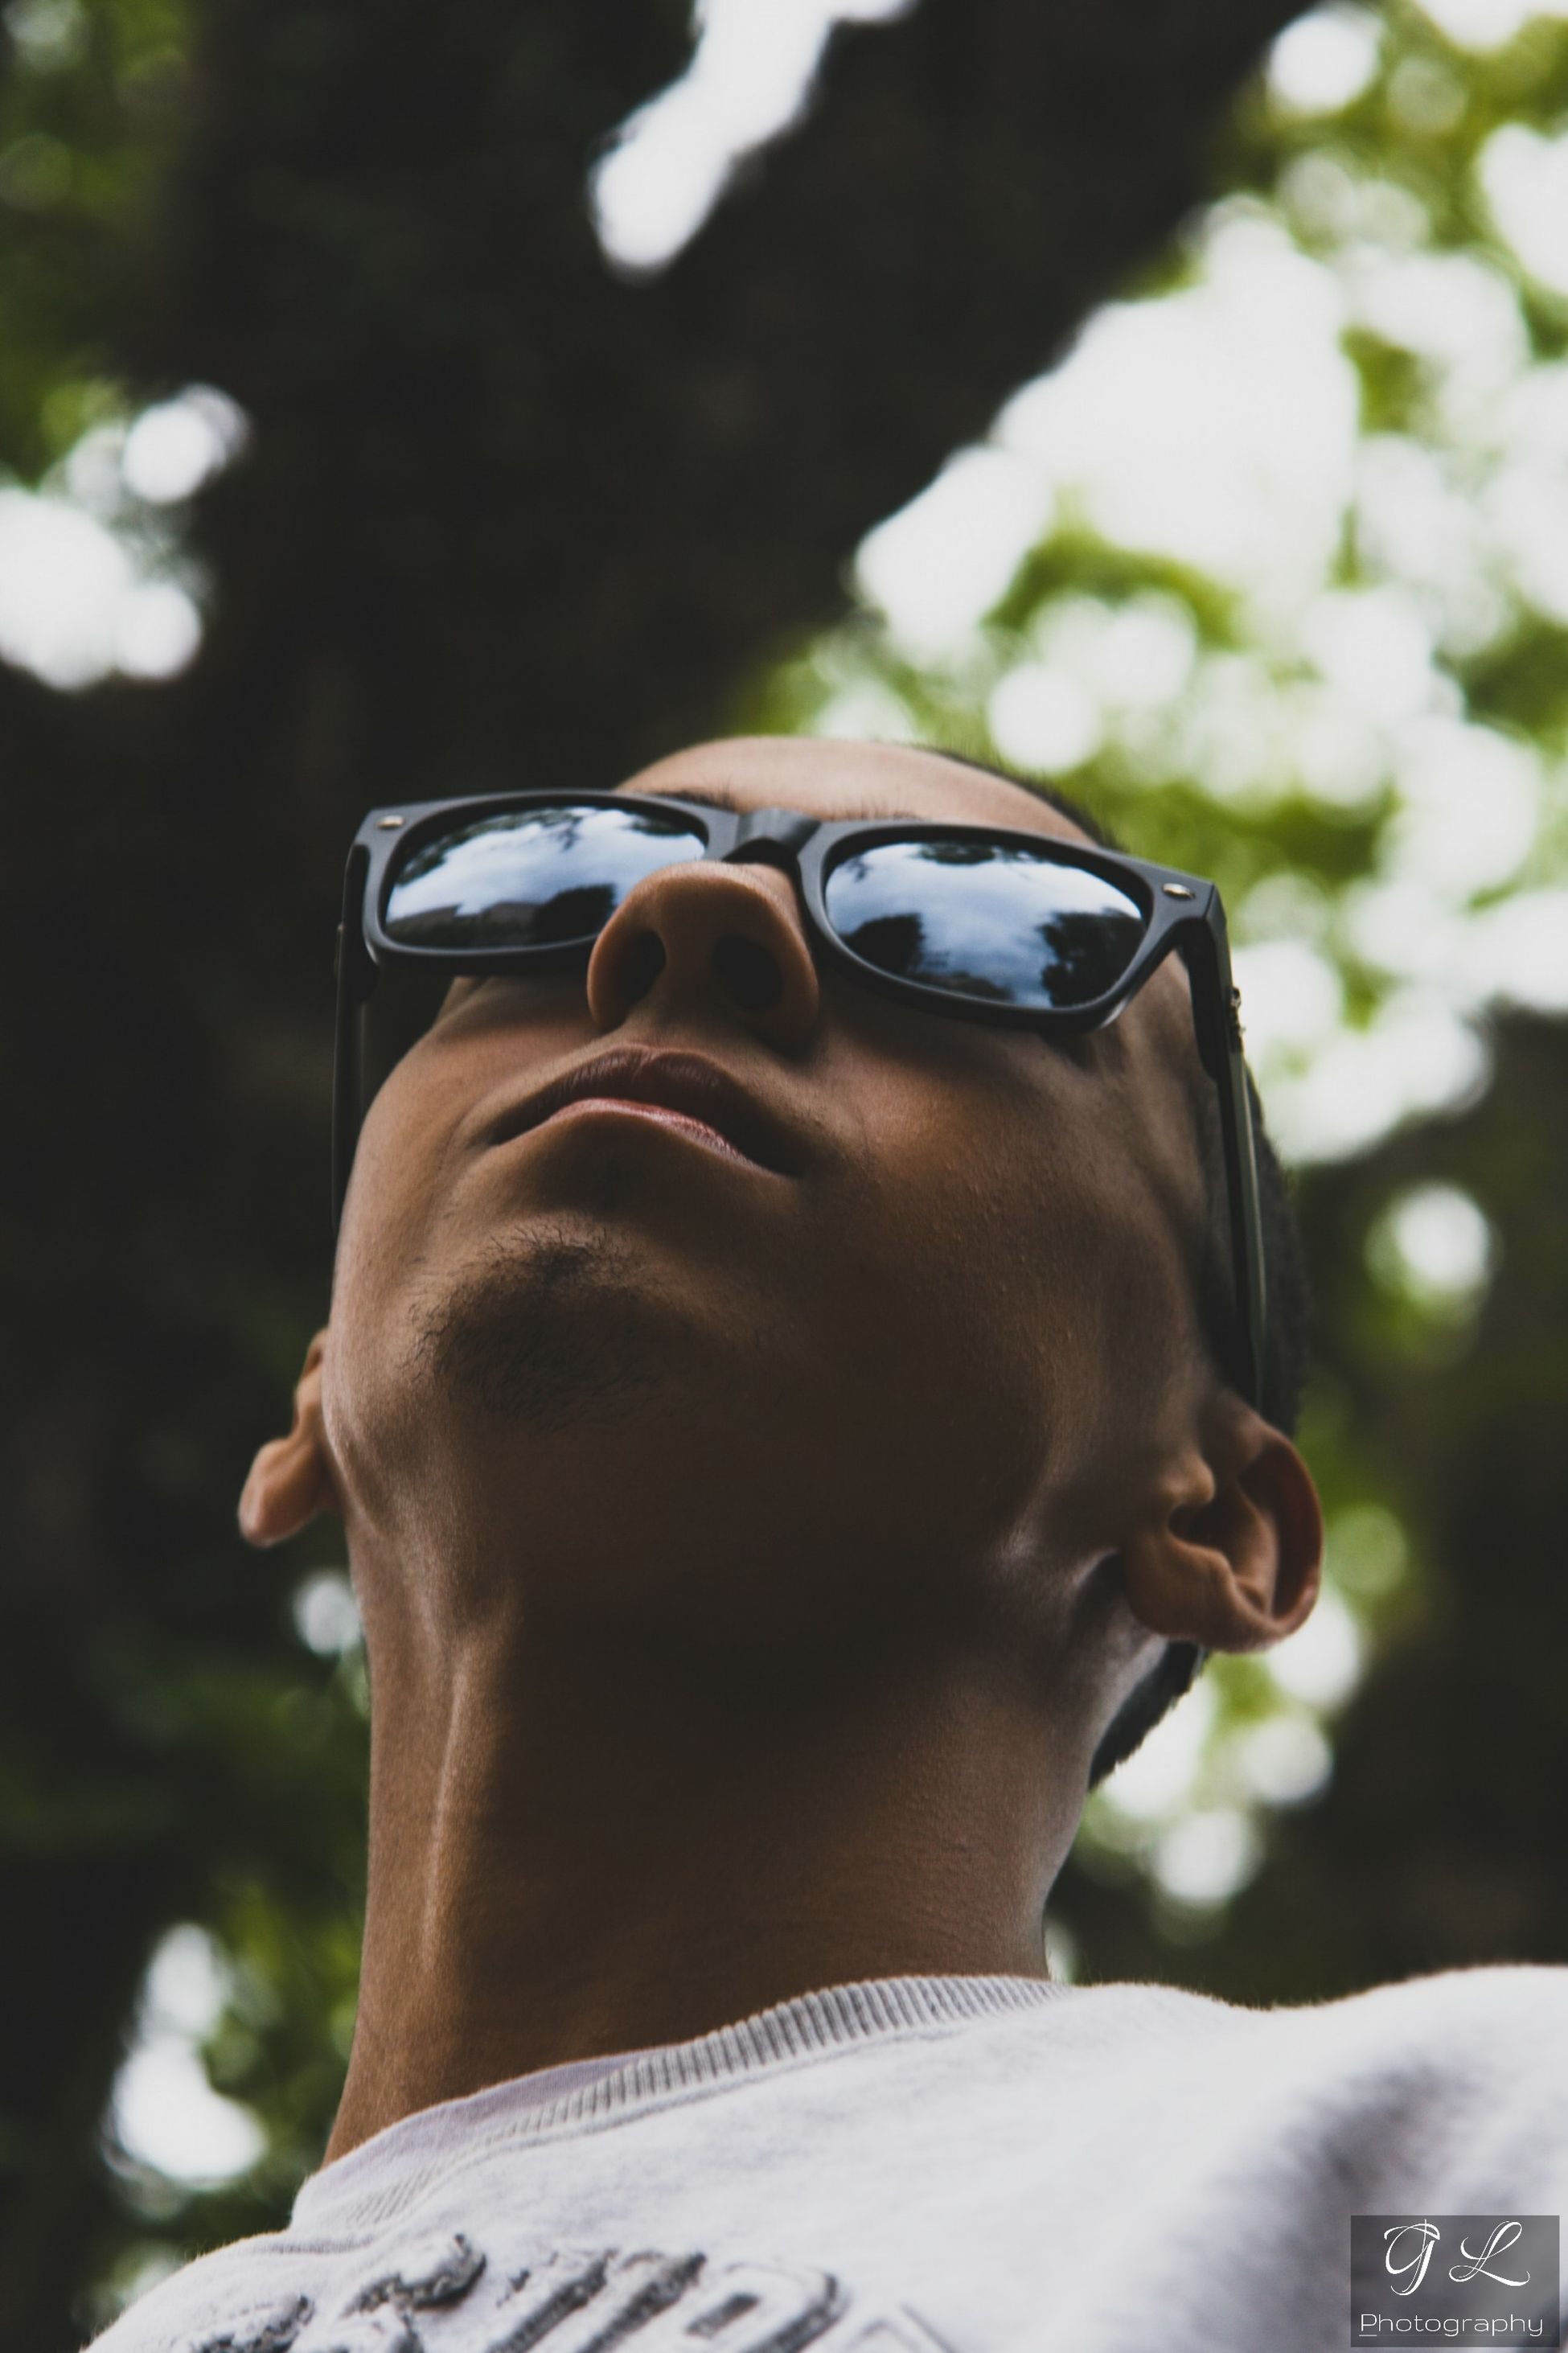 Sunglasses Headshot One Person Adults Only Adult Fashion Close-up Portrait People Young Adult One Young Woman Only Beauty Nature GLPhotography Rio De Janeiro Beautiful People